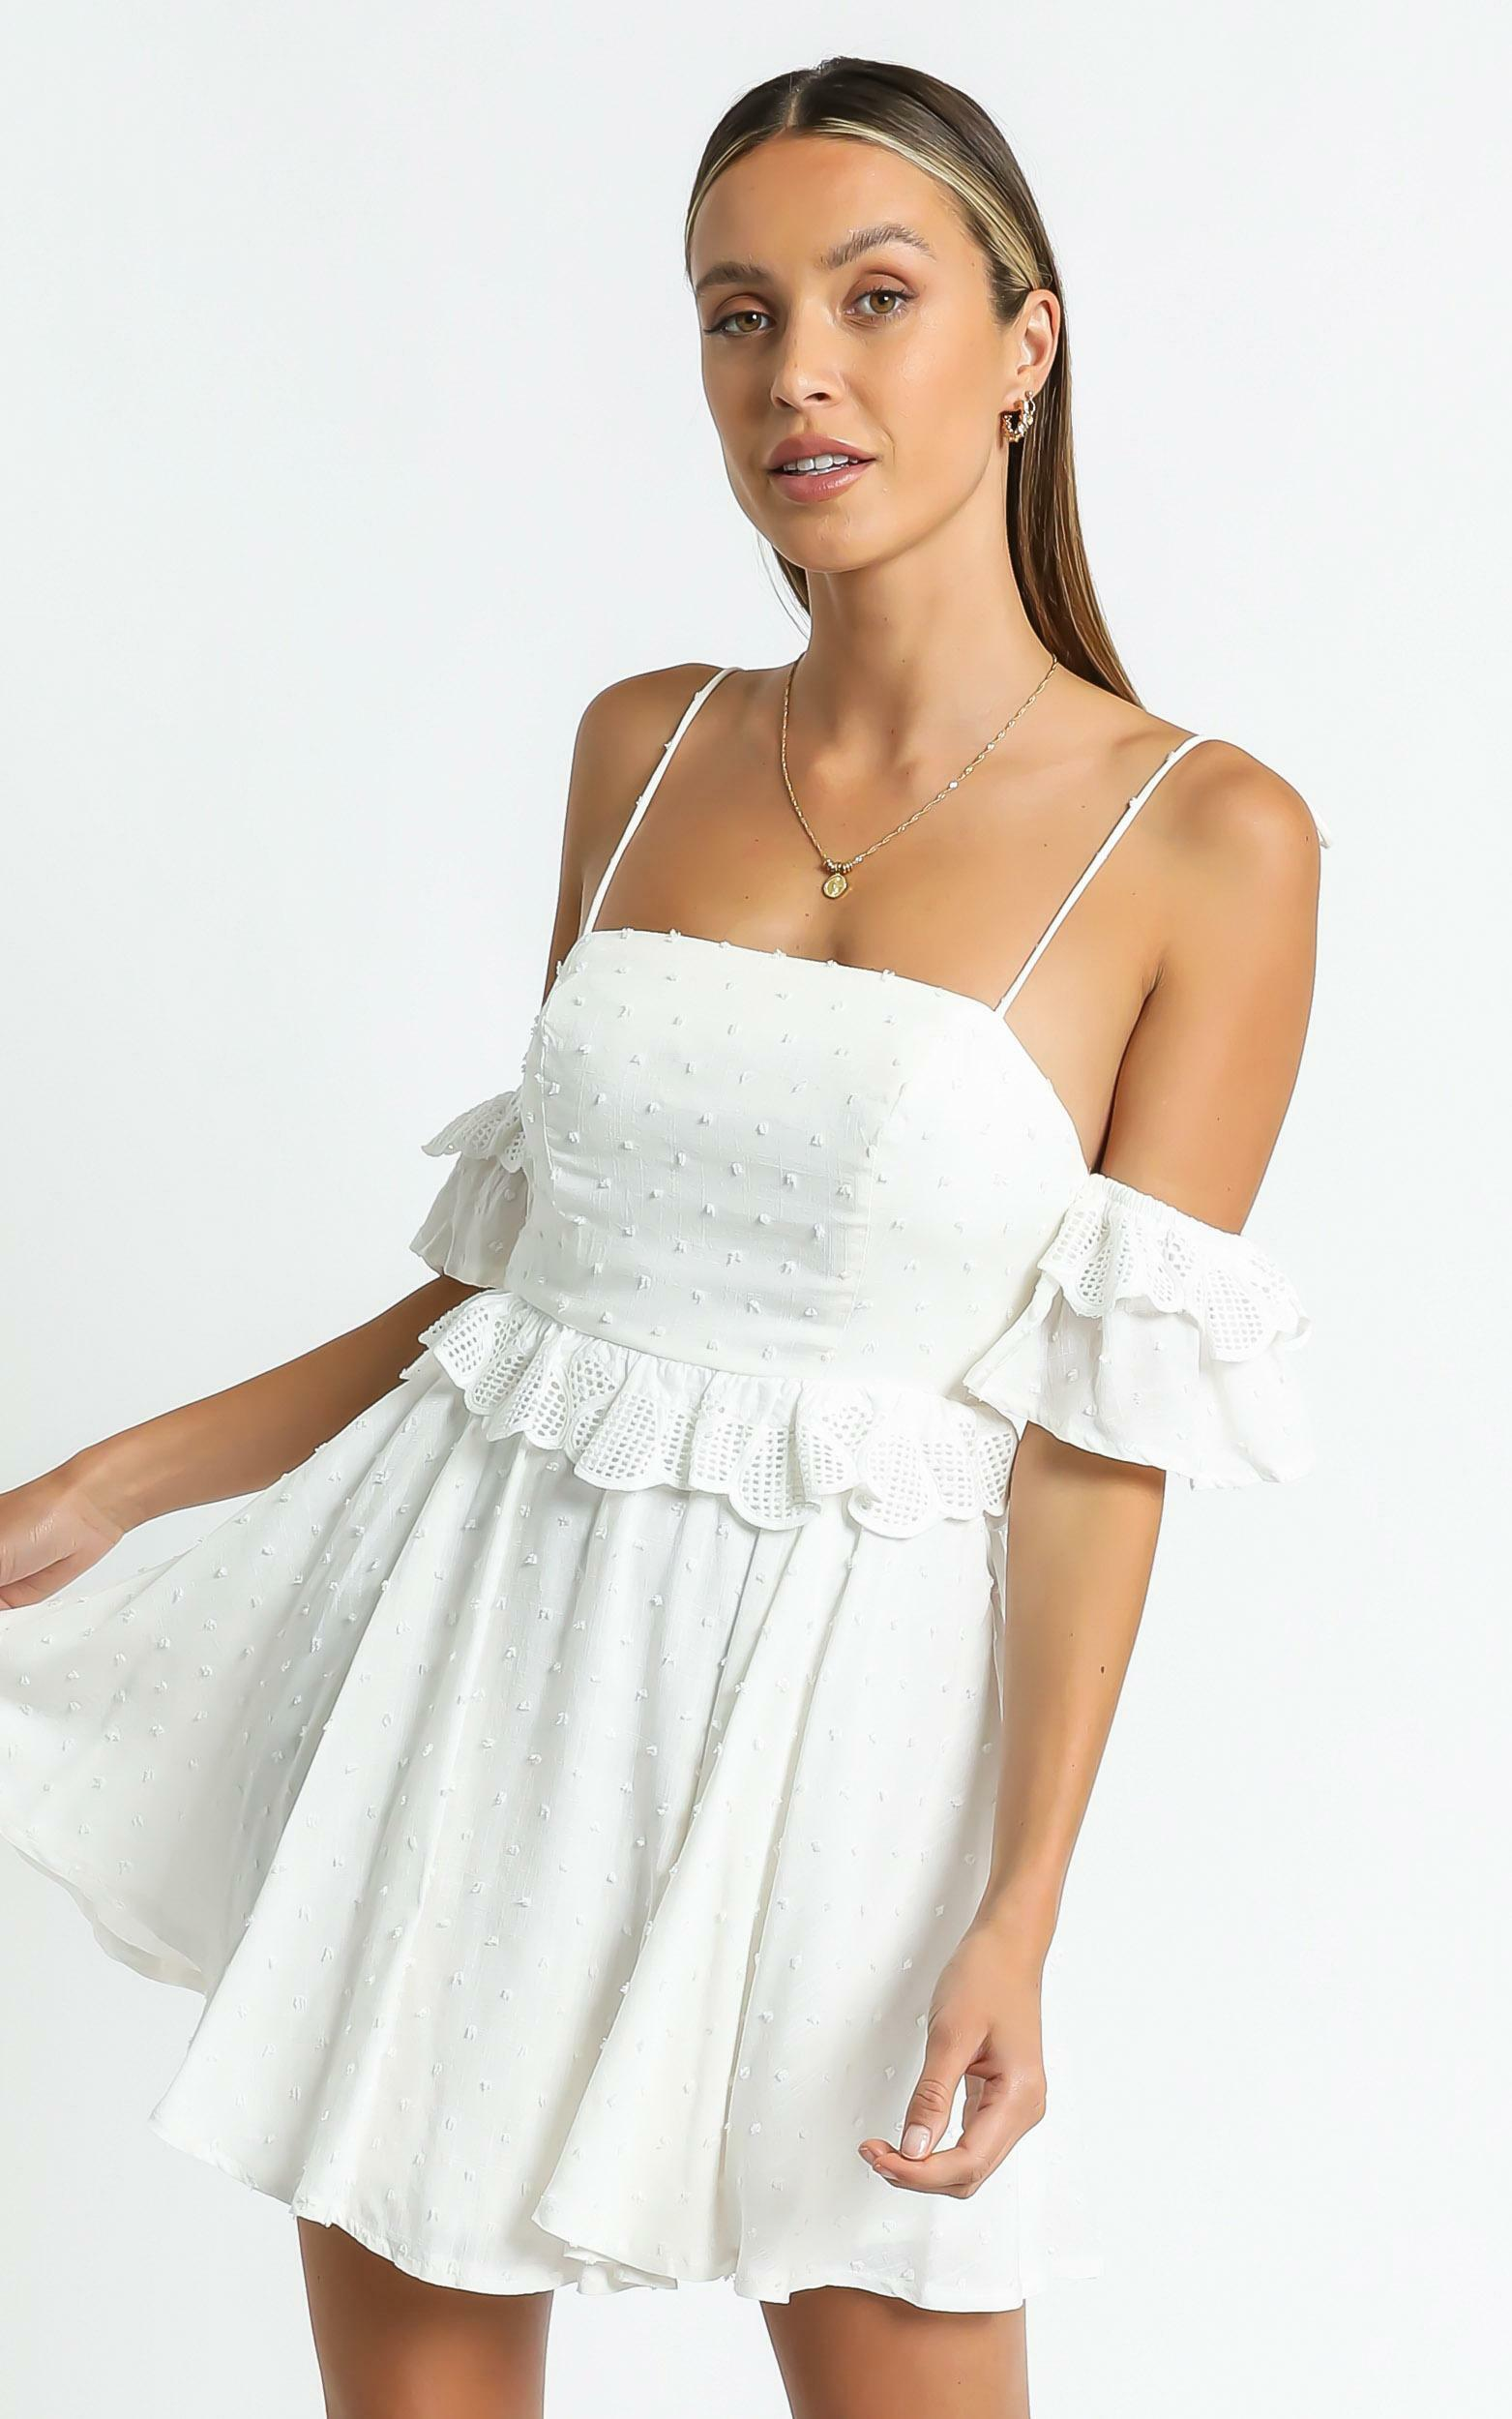 Ziggy Dress in White - 6 (XS), White, hi-res image number null